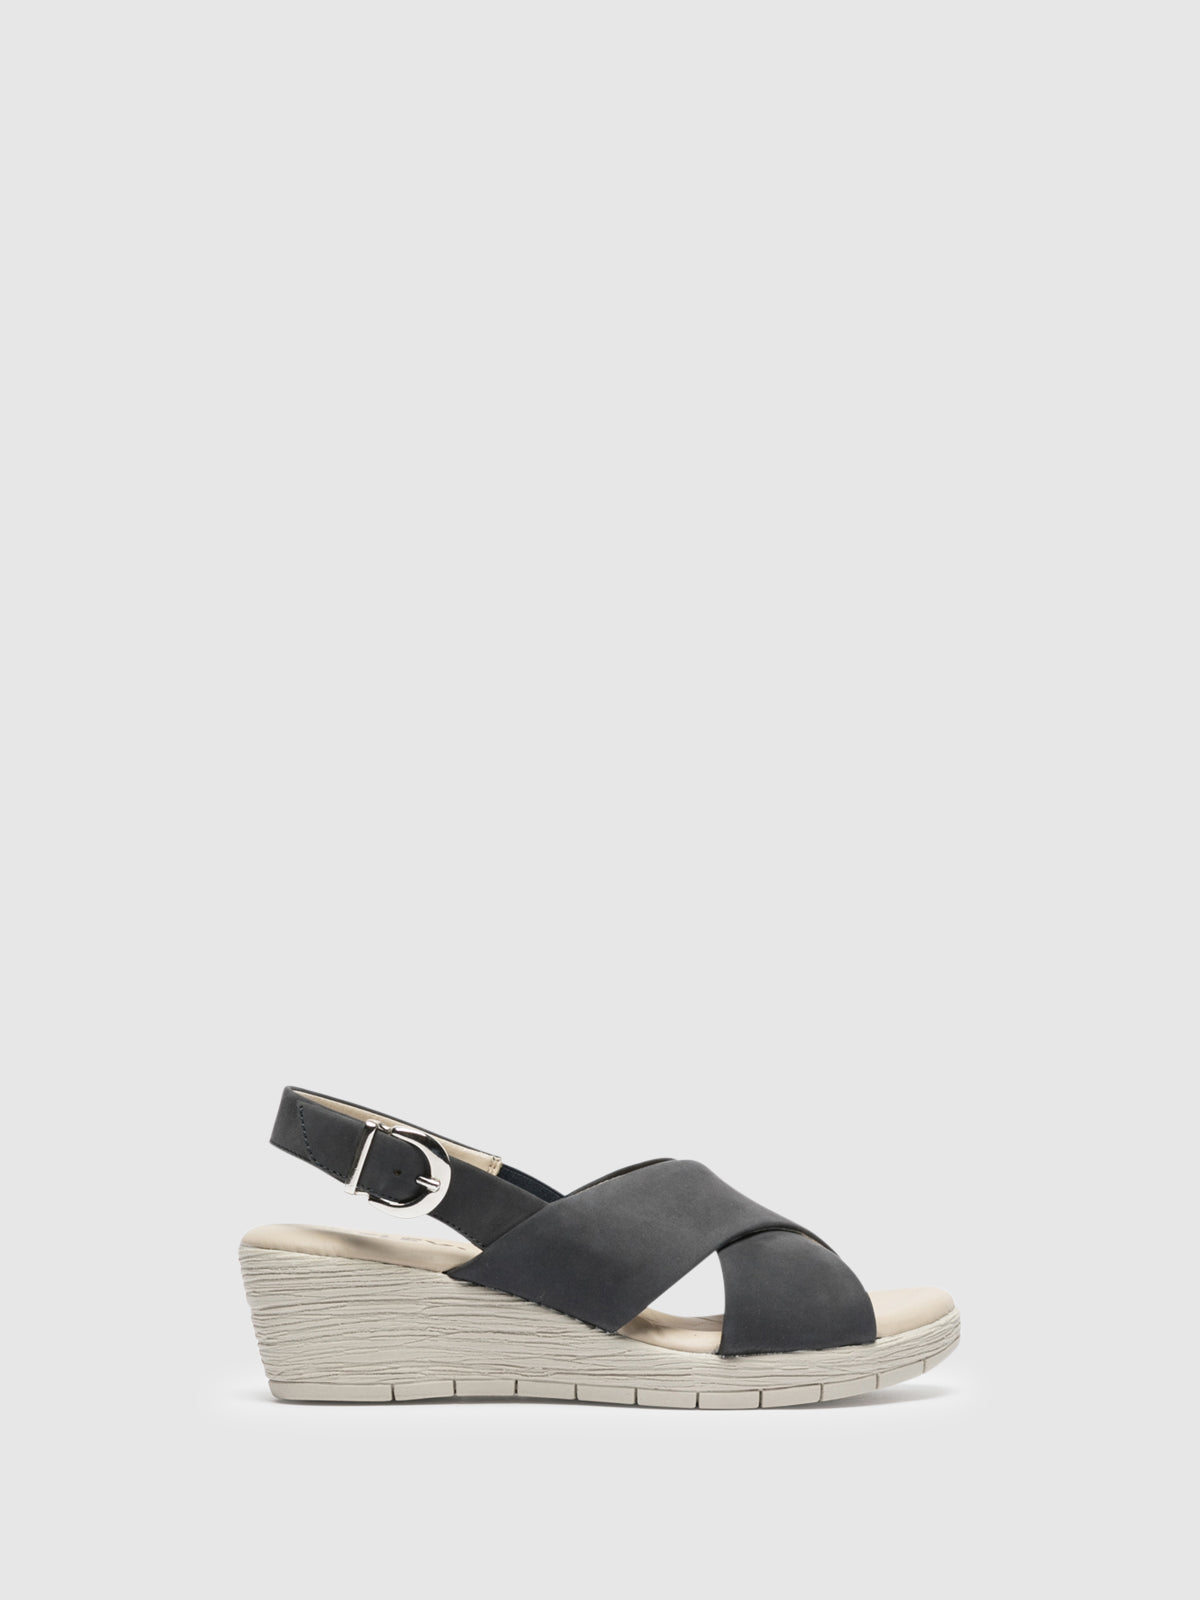 The Flexx Navy Wedge Sandals